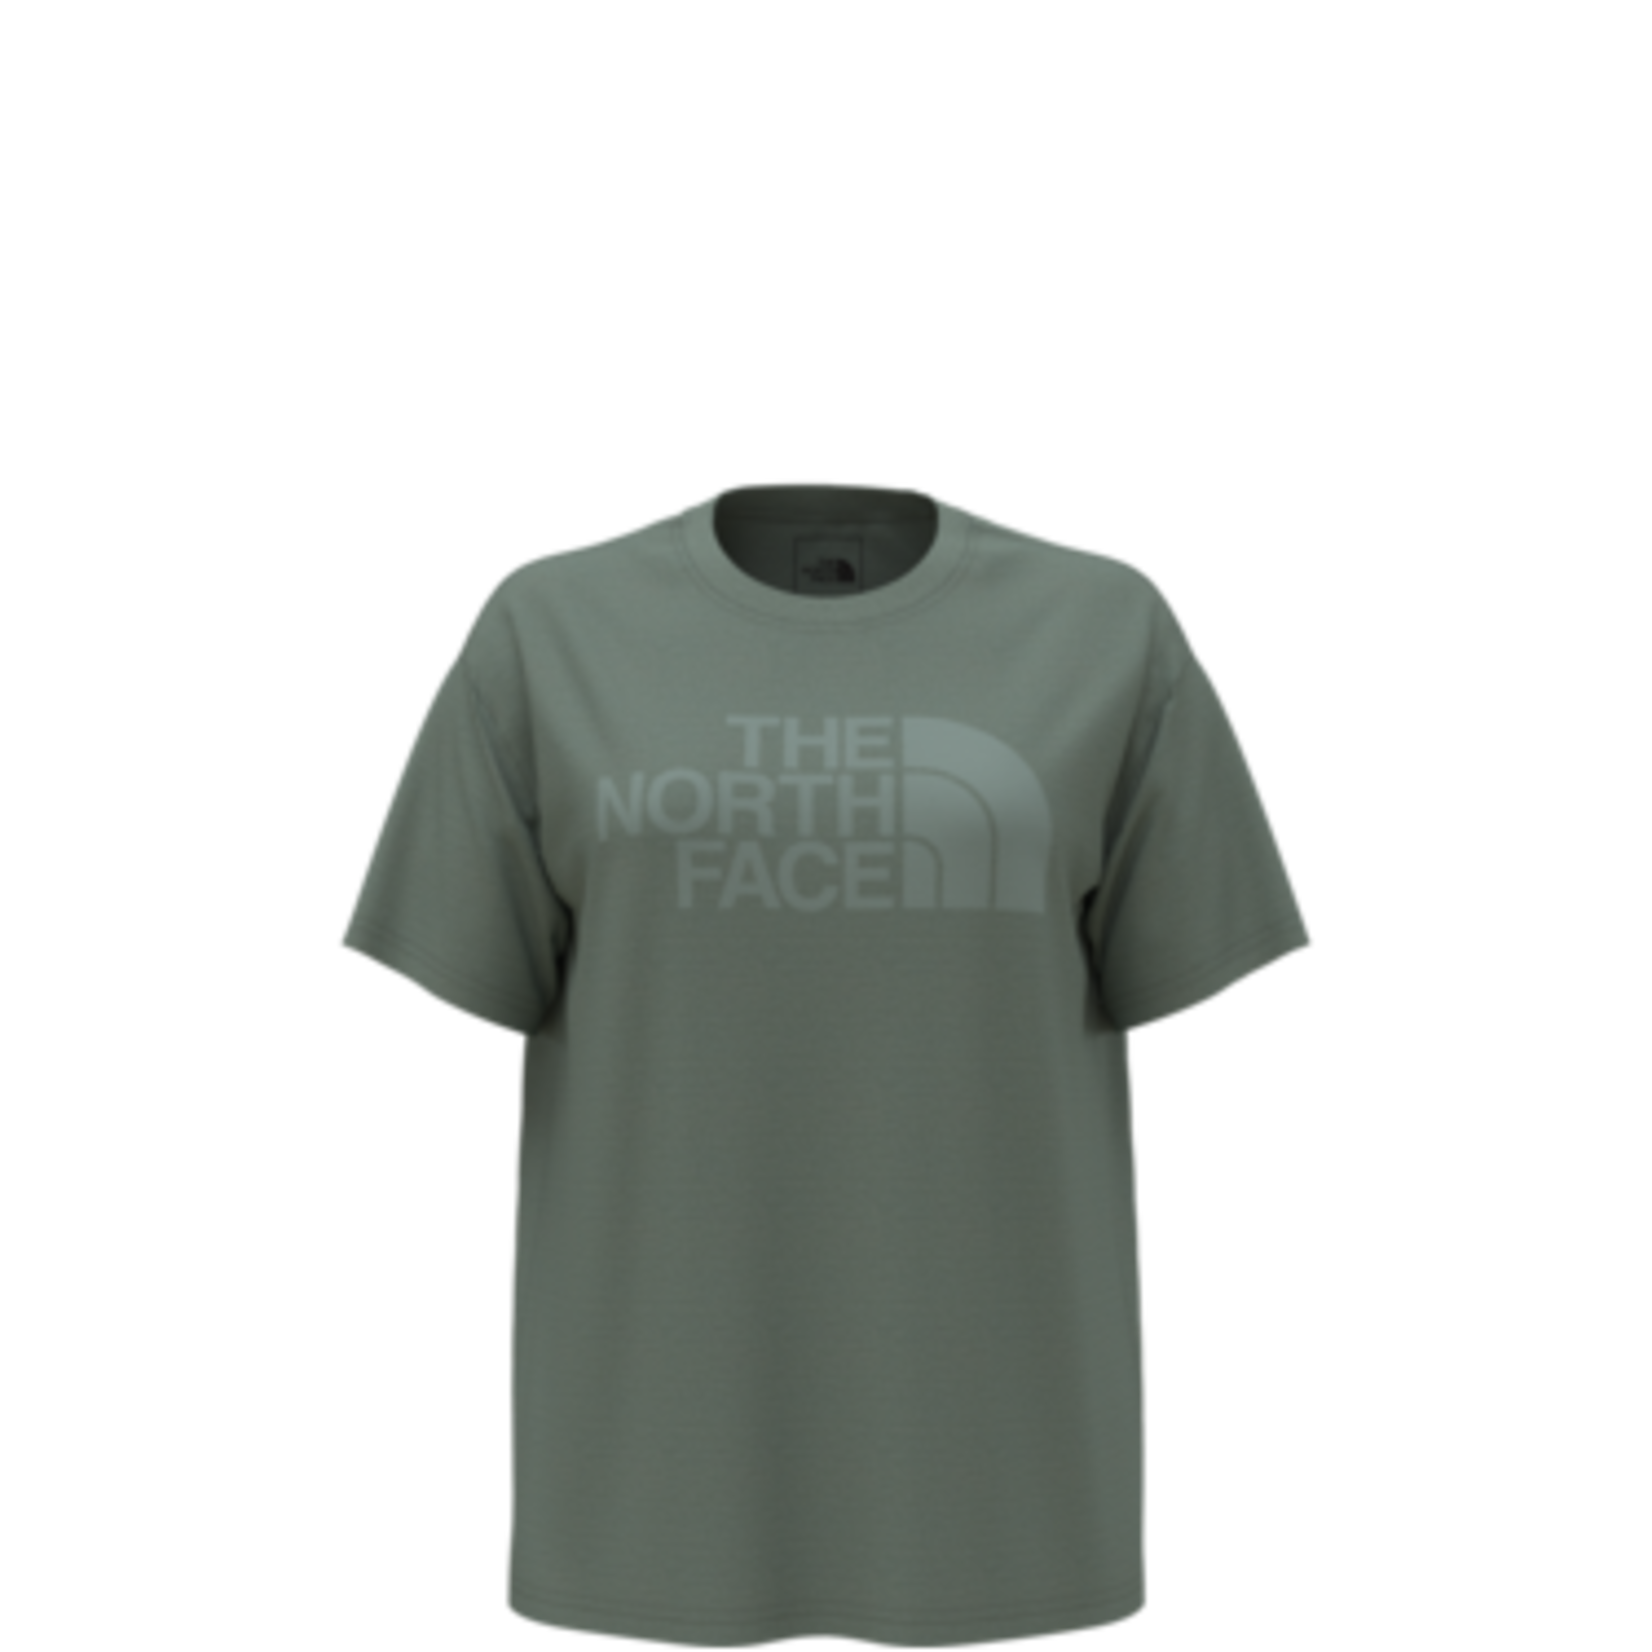 The North Face The North Face T-Shirt, SS Half Dome Tri-Blend, Ladies